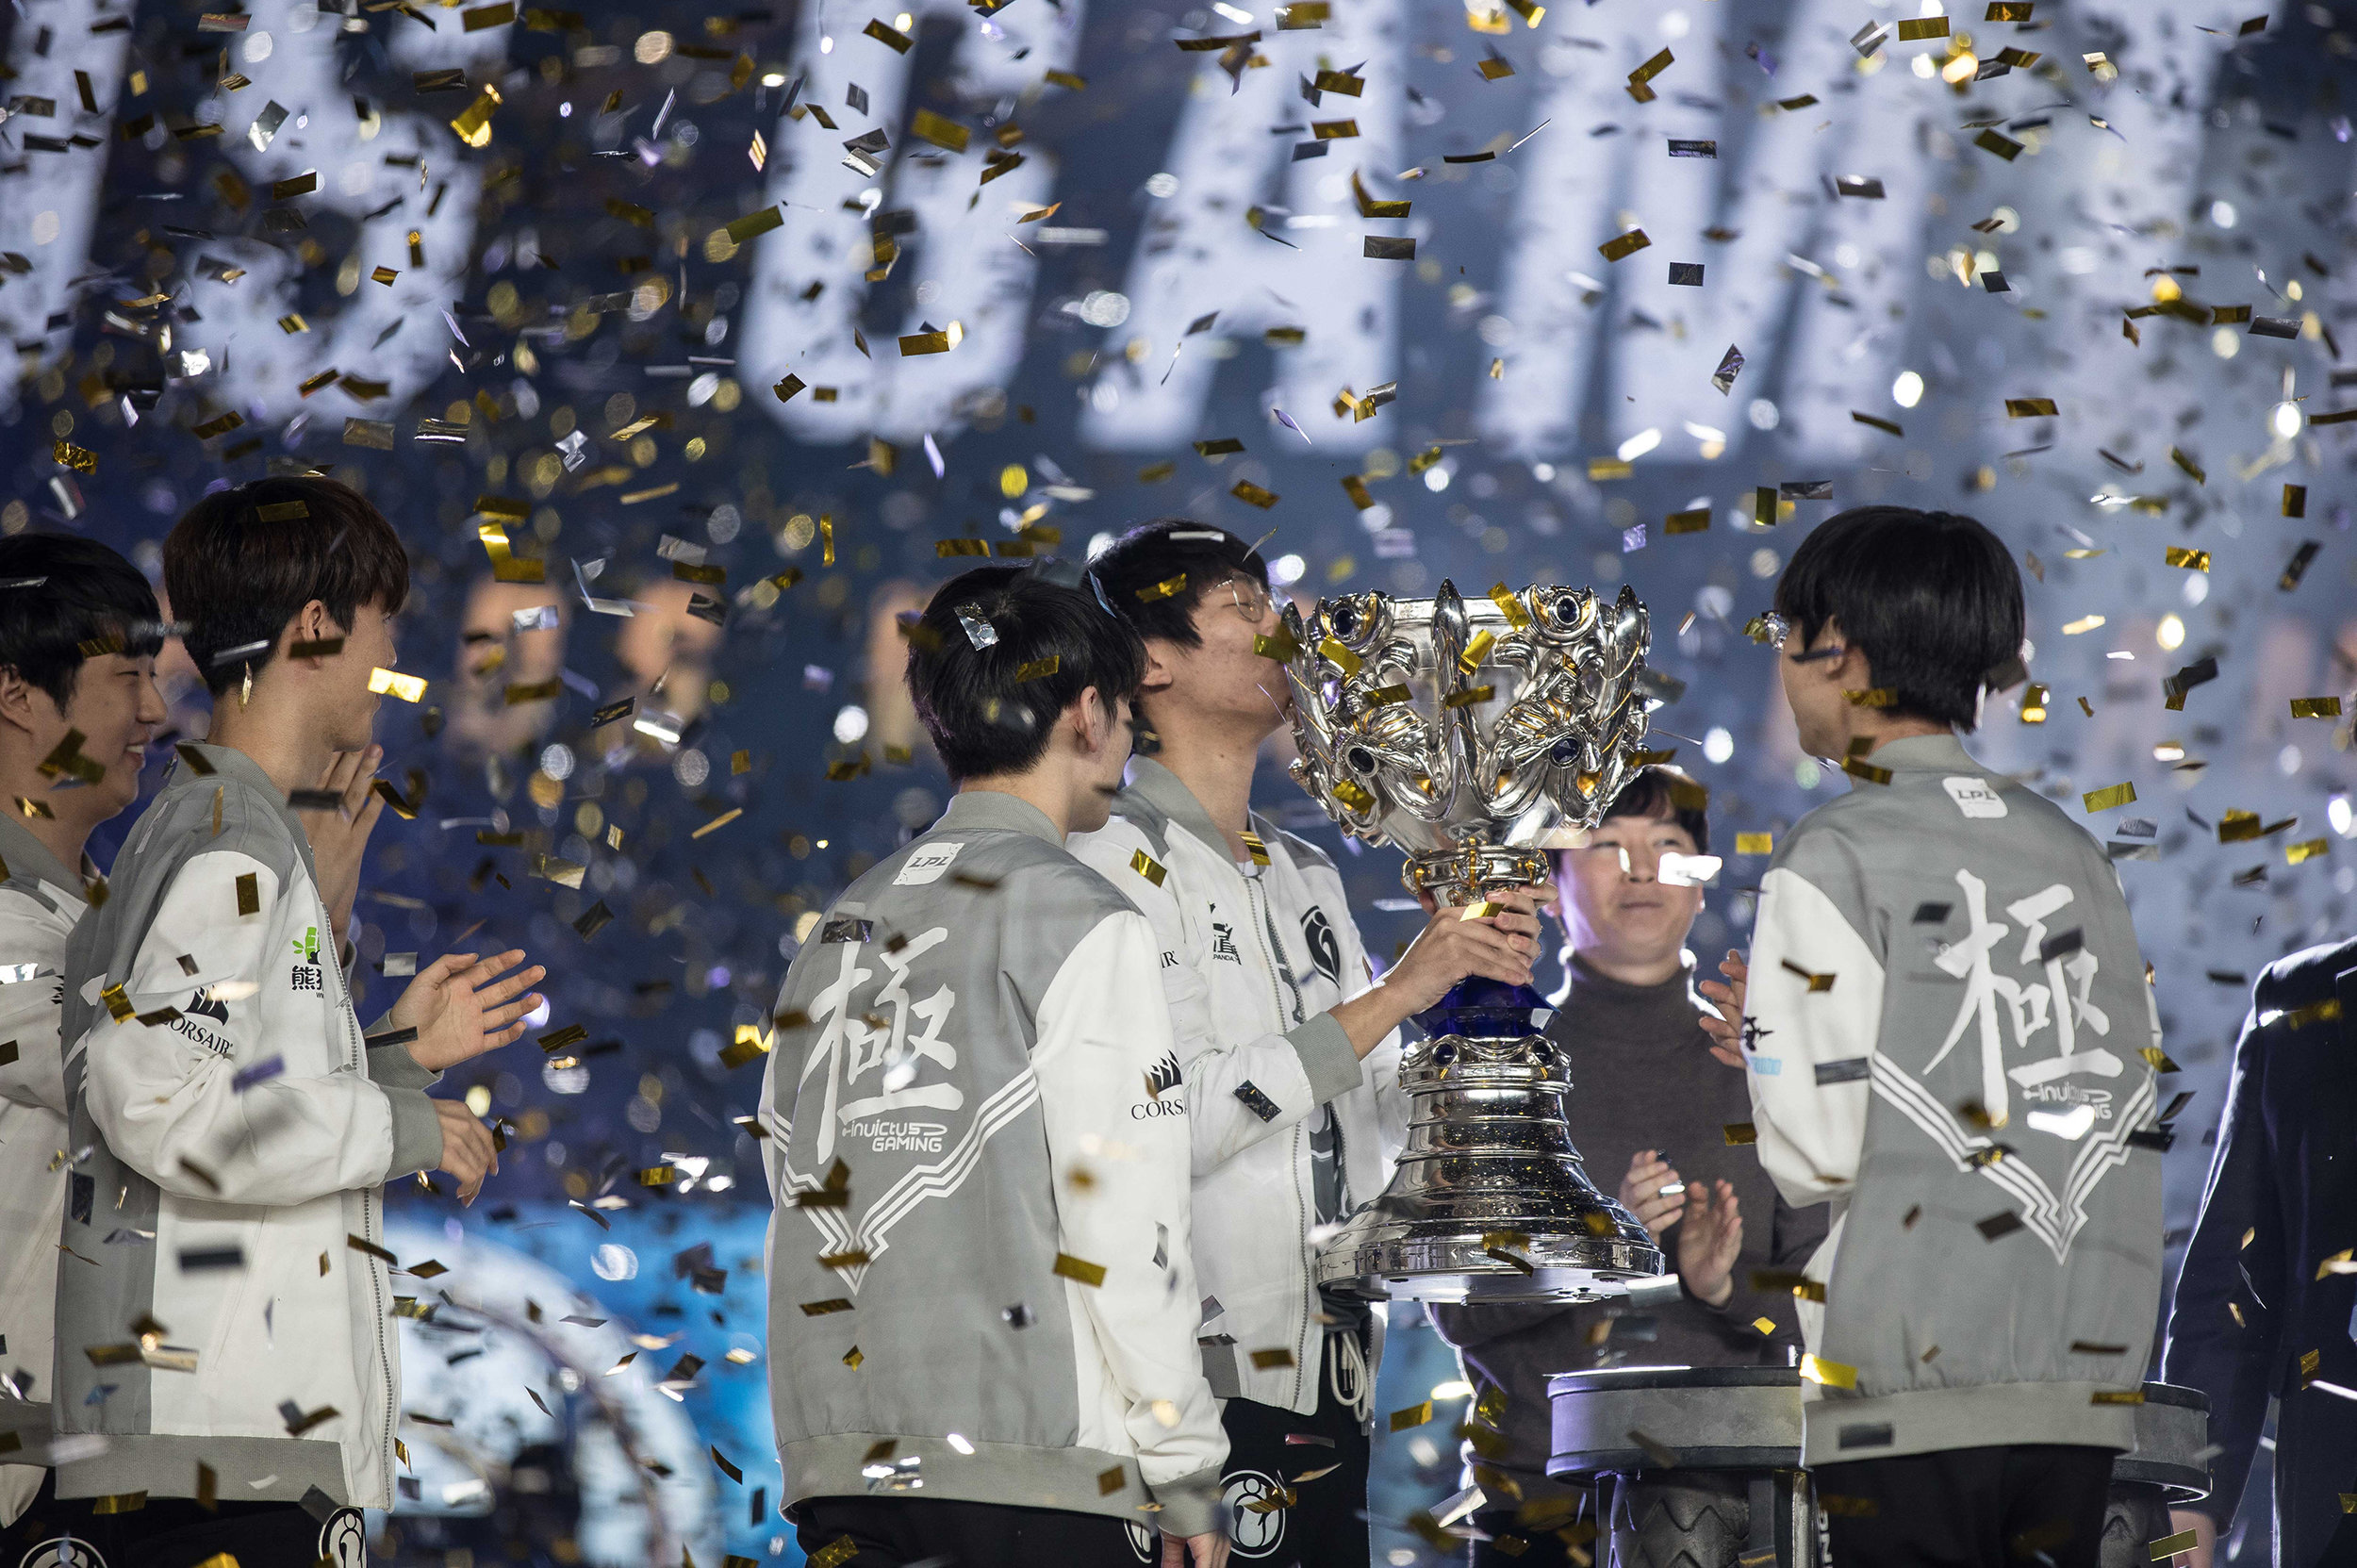 Invictus Gaming wins the 2018 League of Legends World Championship sponsored by Mastercard on November 3, 2018 in Incheon, South Korea.  Photo by Hannah Smith/ESPAT Media for Mastercard